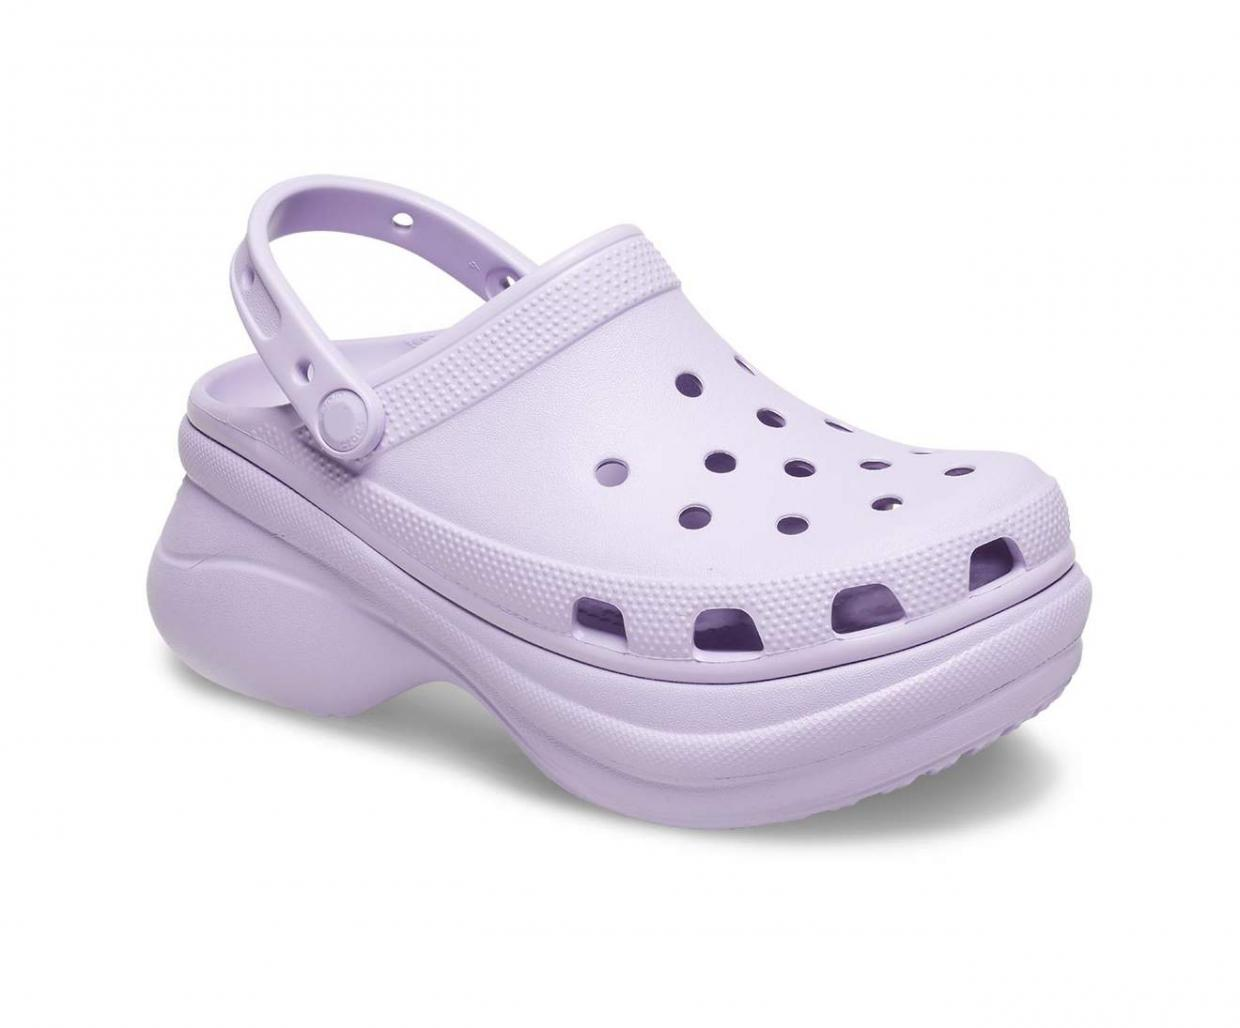 crocs a talon